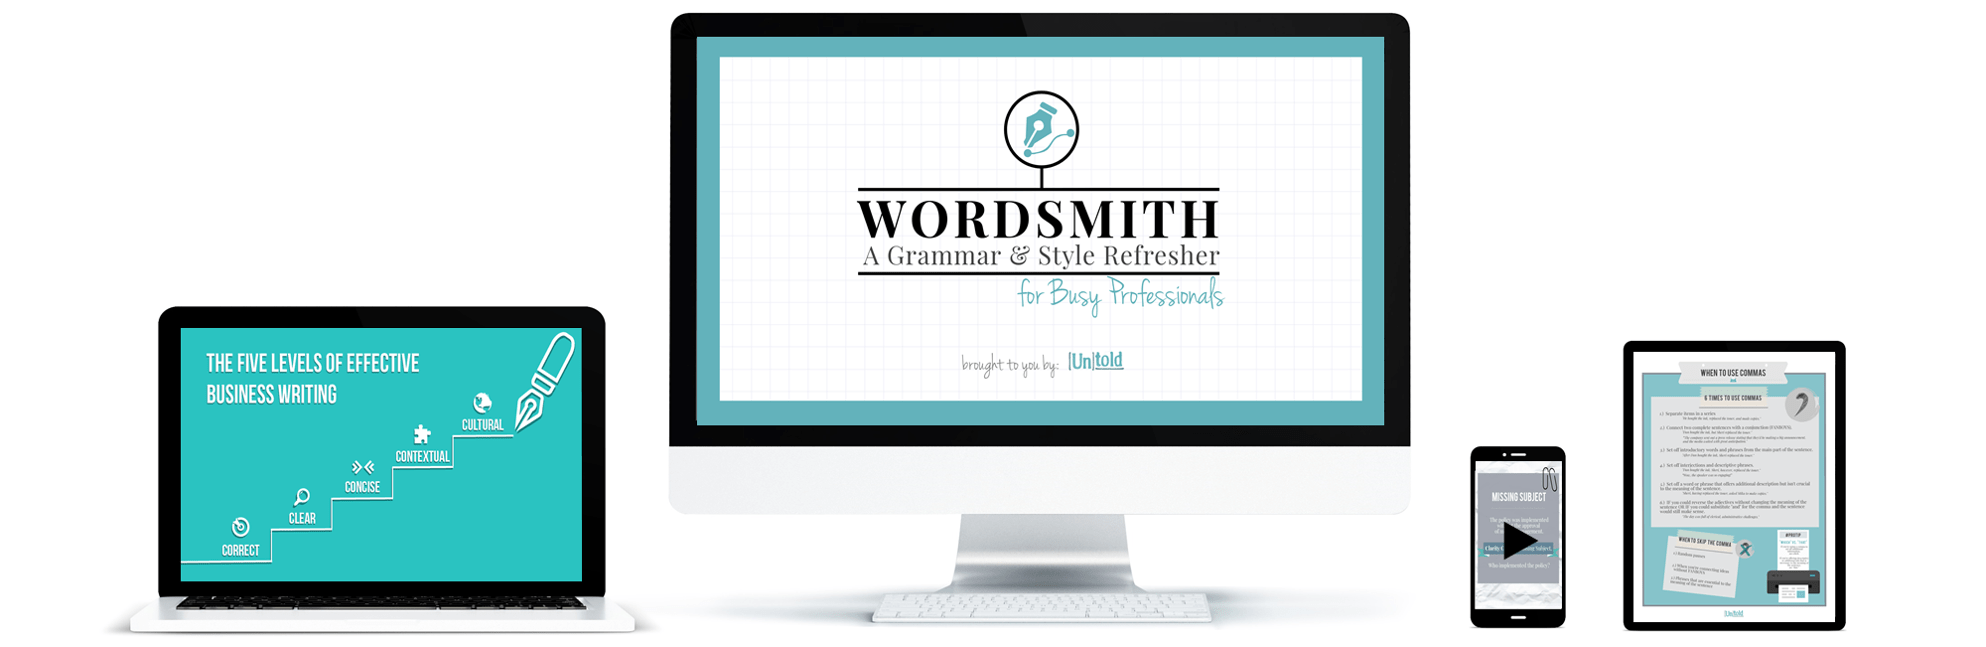 Online Writing Course, Wordsmith Grammar and Style Professional Writing Training. The online training course features infographics, video case studies, worksheets, cheatsheets, and professionally designed slides.